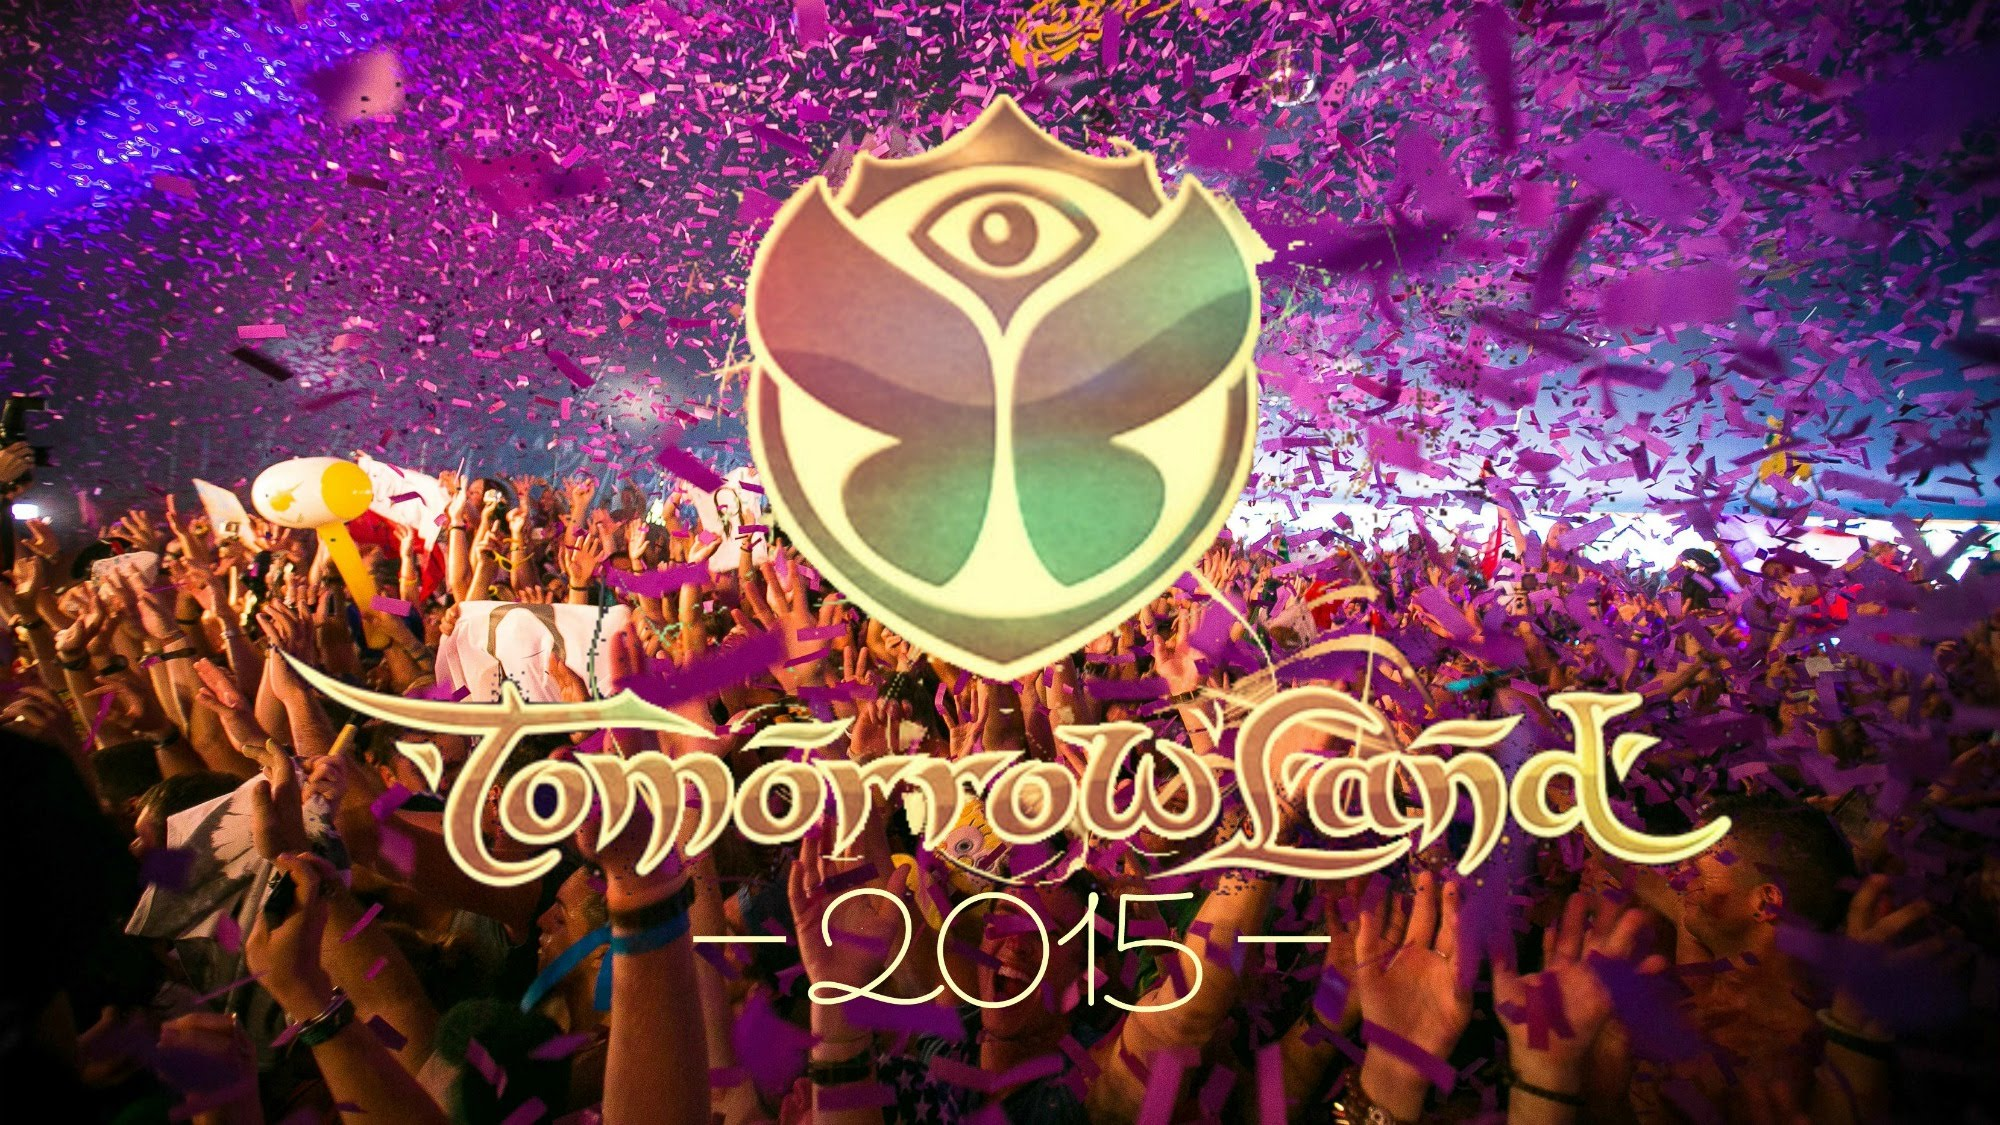 Tomorrowland 2015 - Live Stream